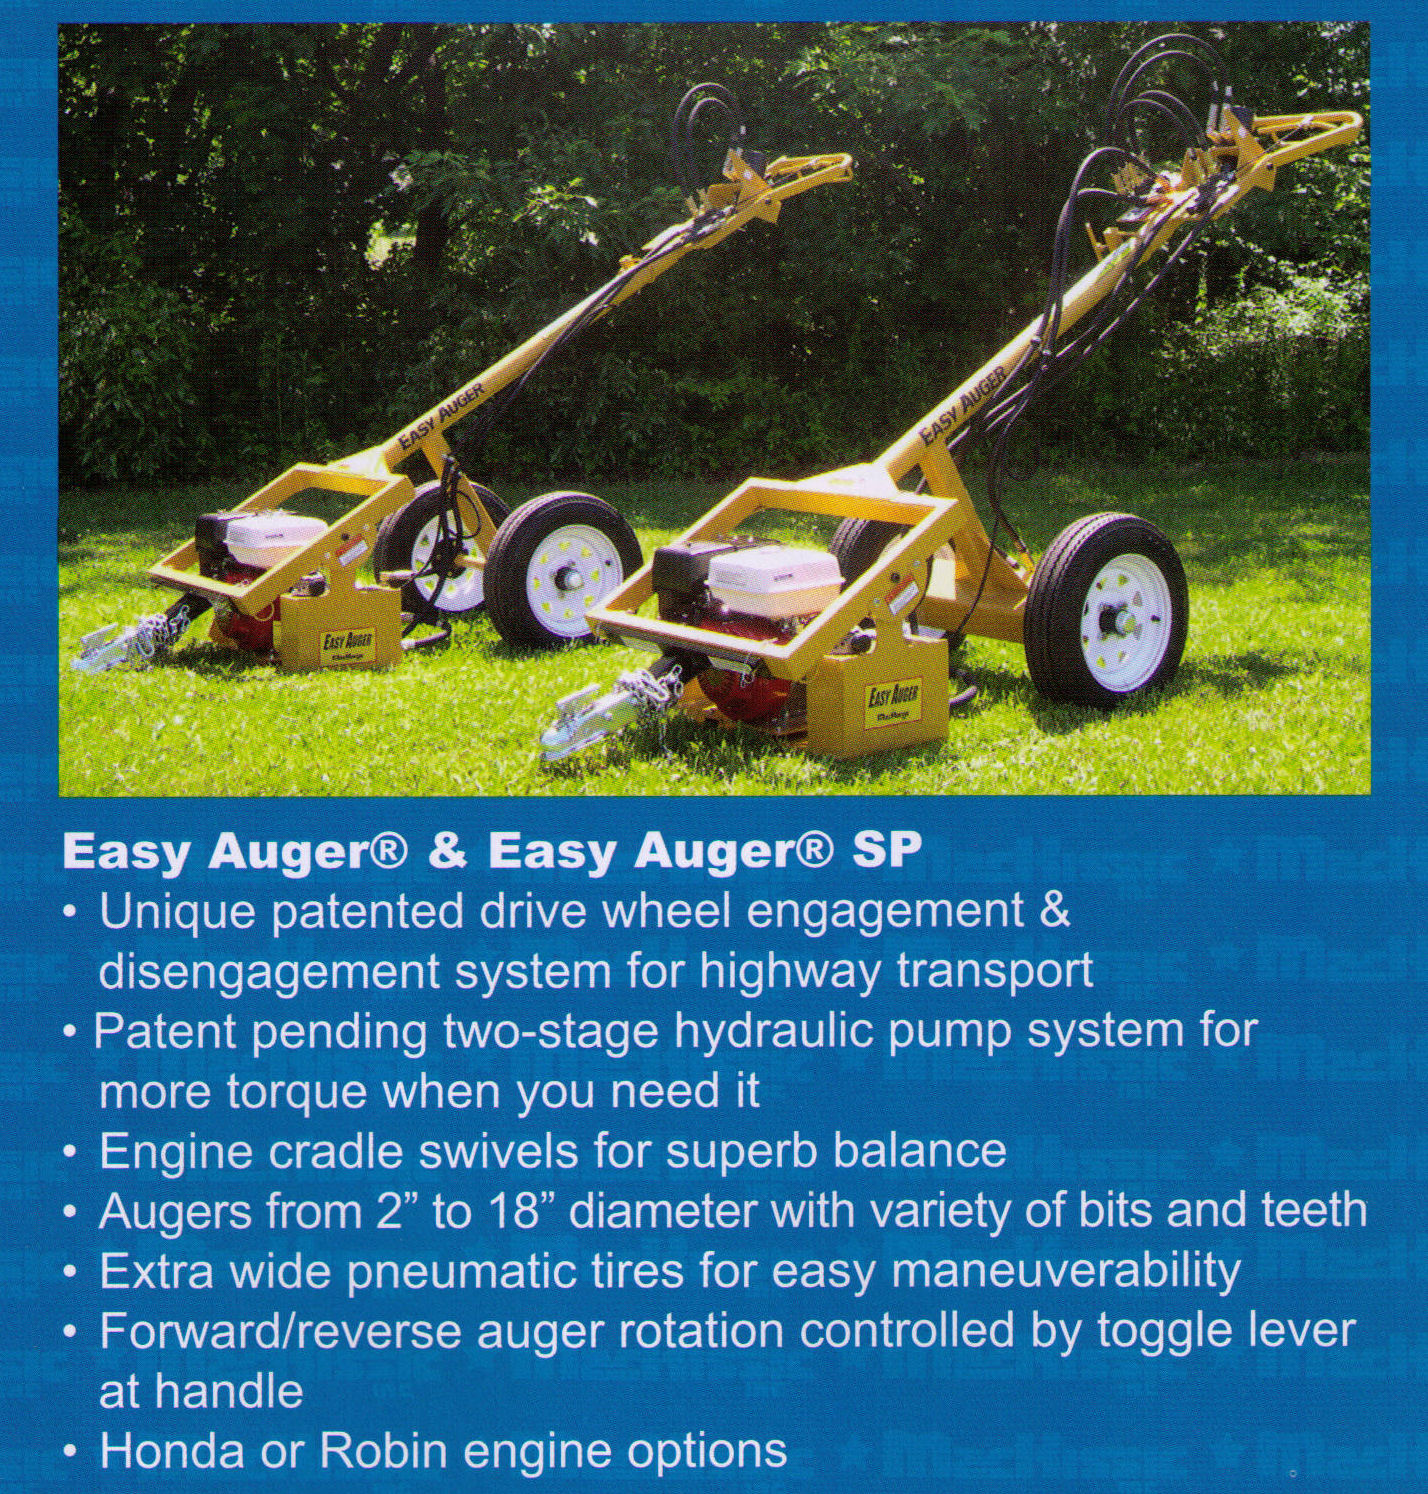 Easy Auger Features